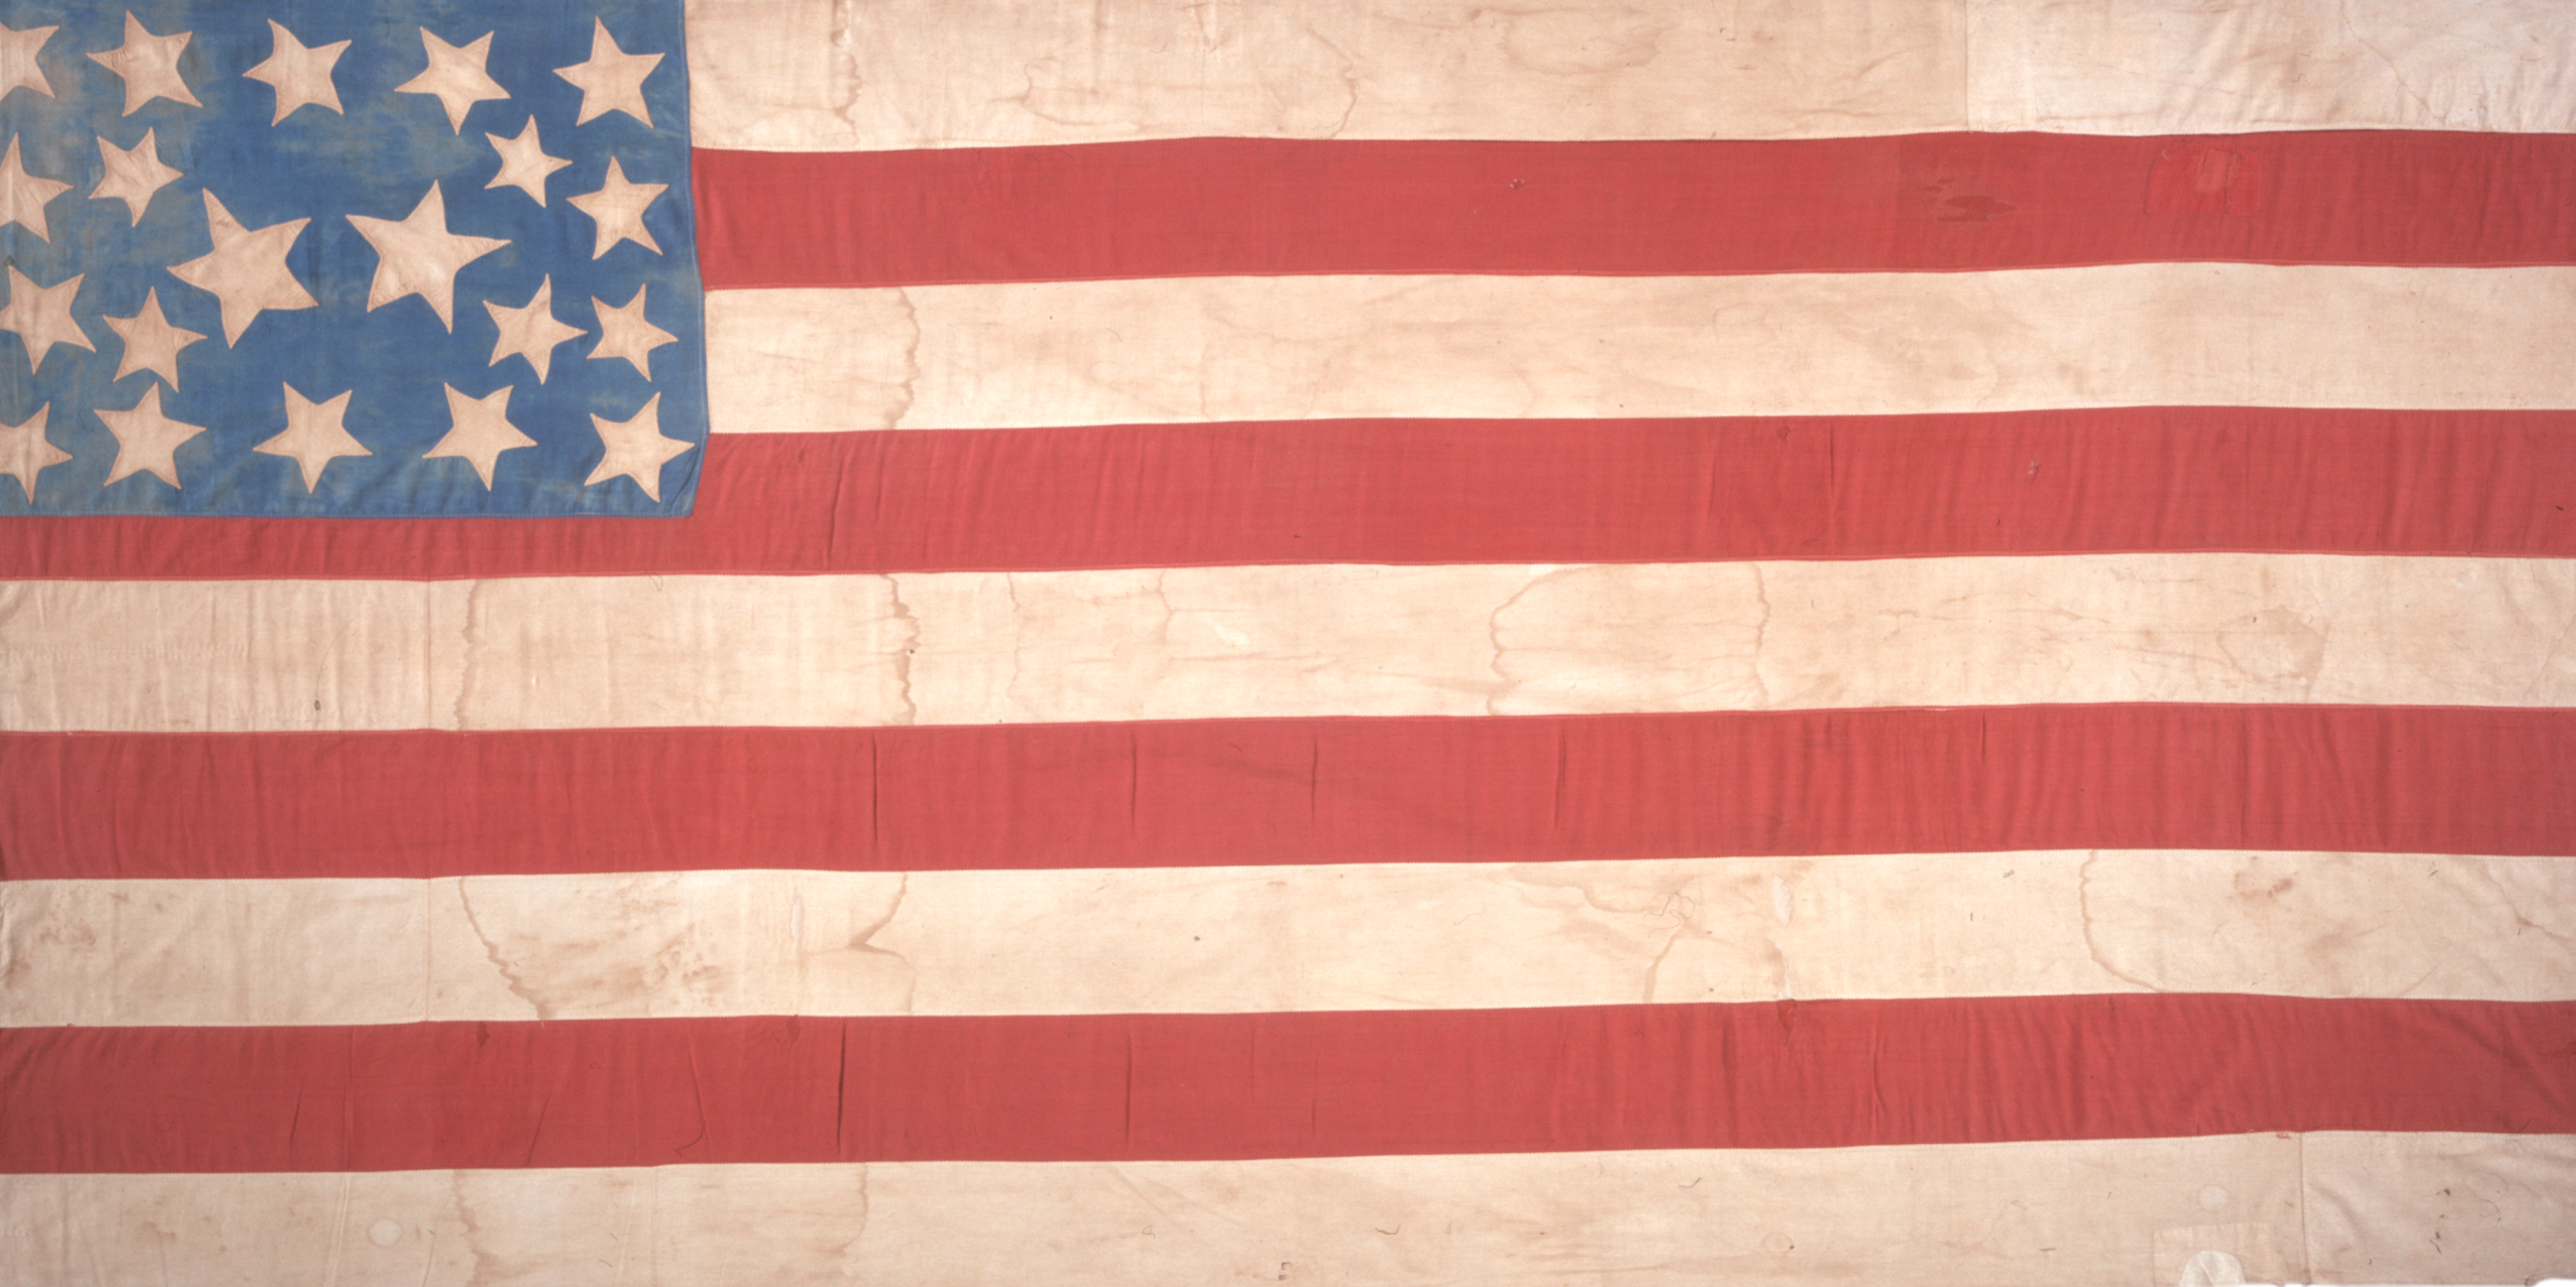 "Twenty Star American ""Abolitionist Flag"", ca. 1859 (Gilder Lehrman Institute)"